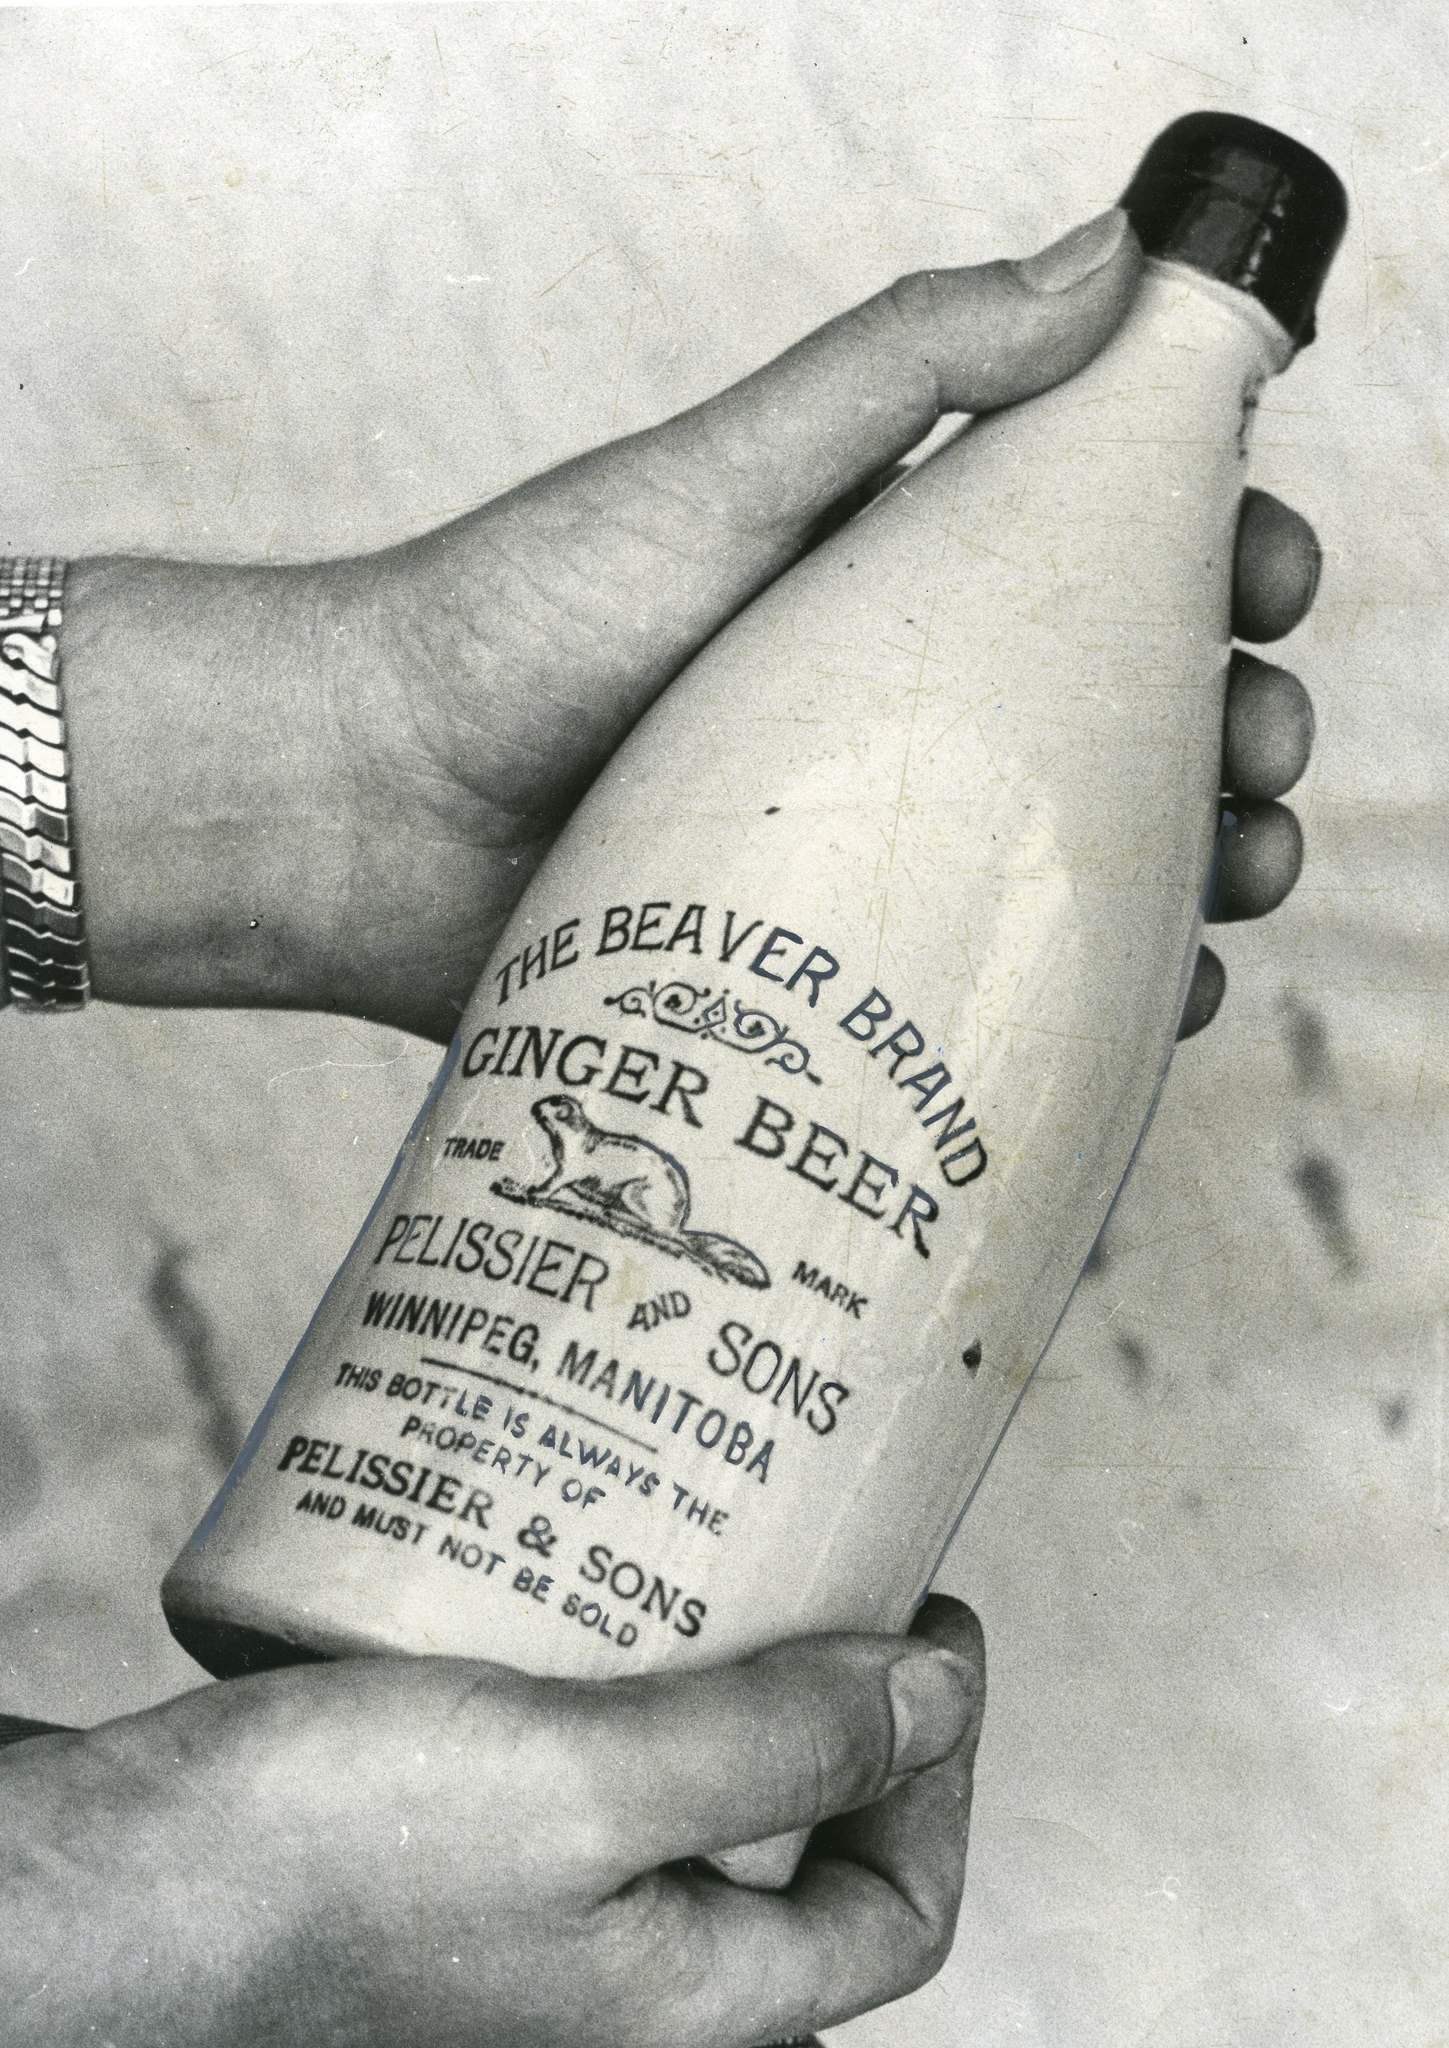 A bottle of the Beaver Brand Ginger Beer produced by Winnipeg's Plessier and Sons in 1950. (Winnipeg Free Press files)</p>